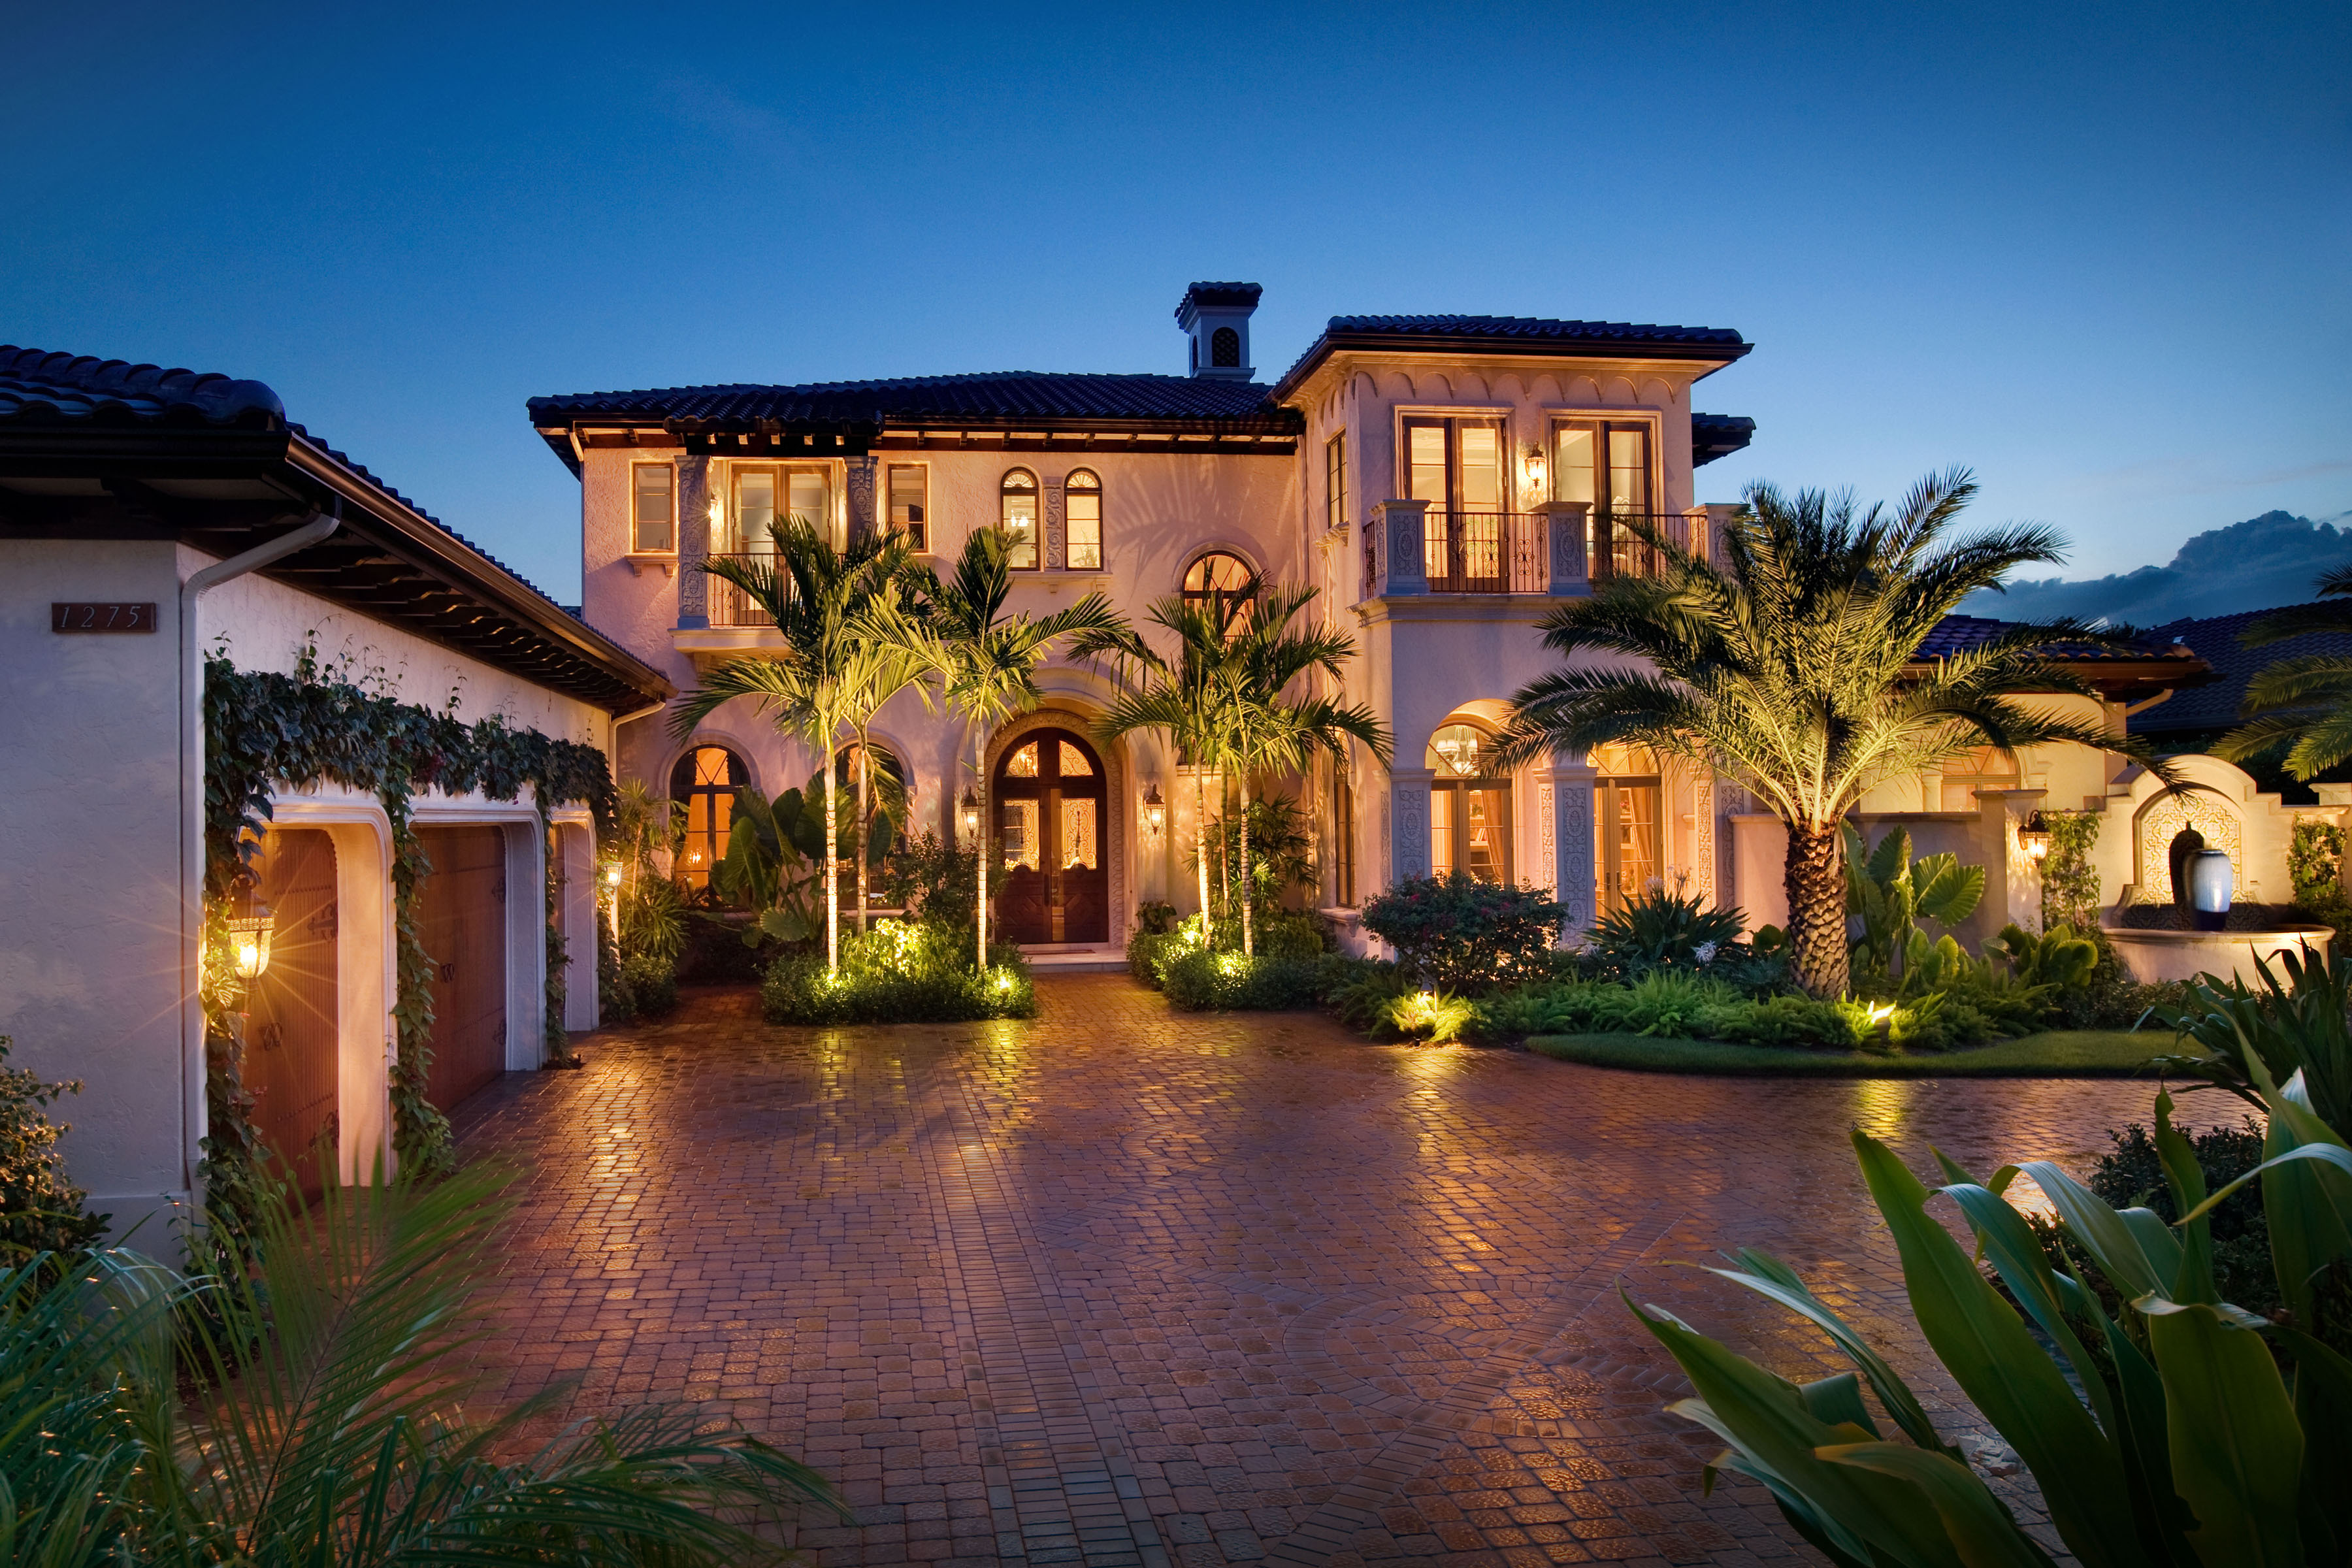 Wall street journal tees up most popular homes naples for Most popular house styles